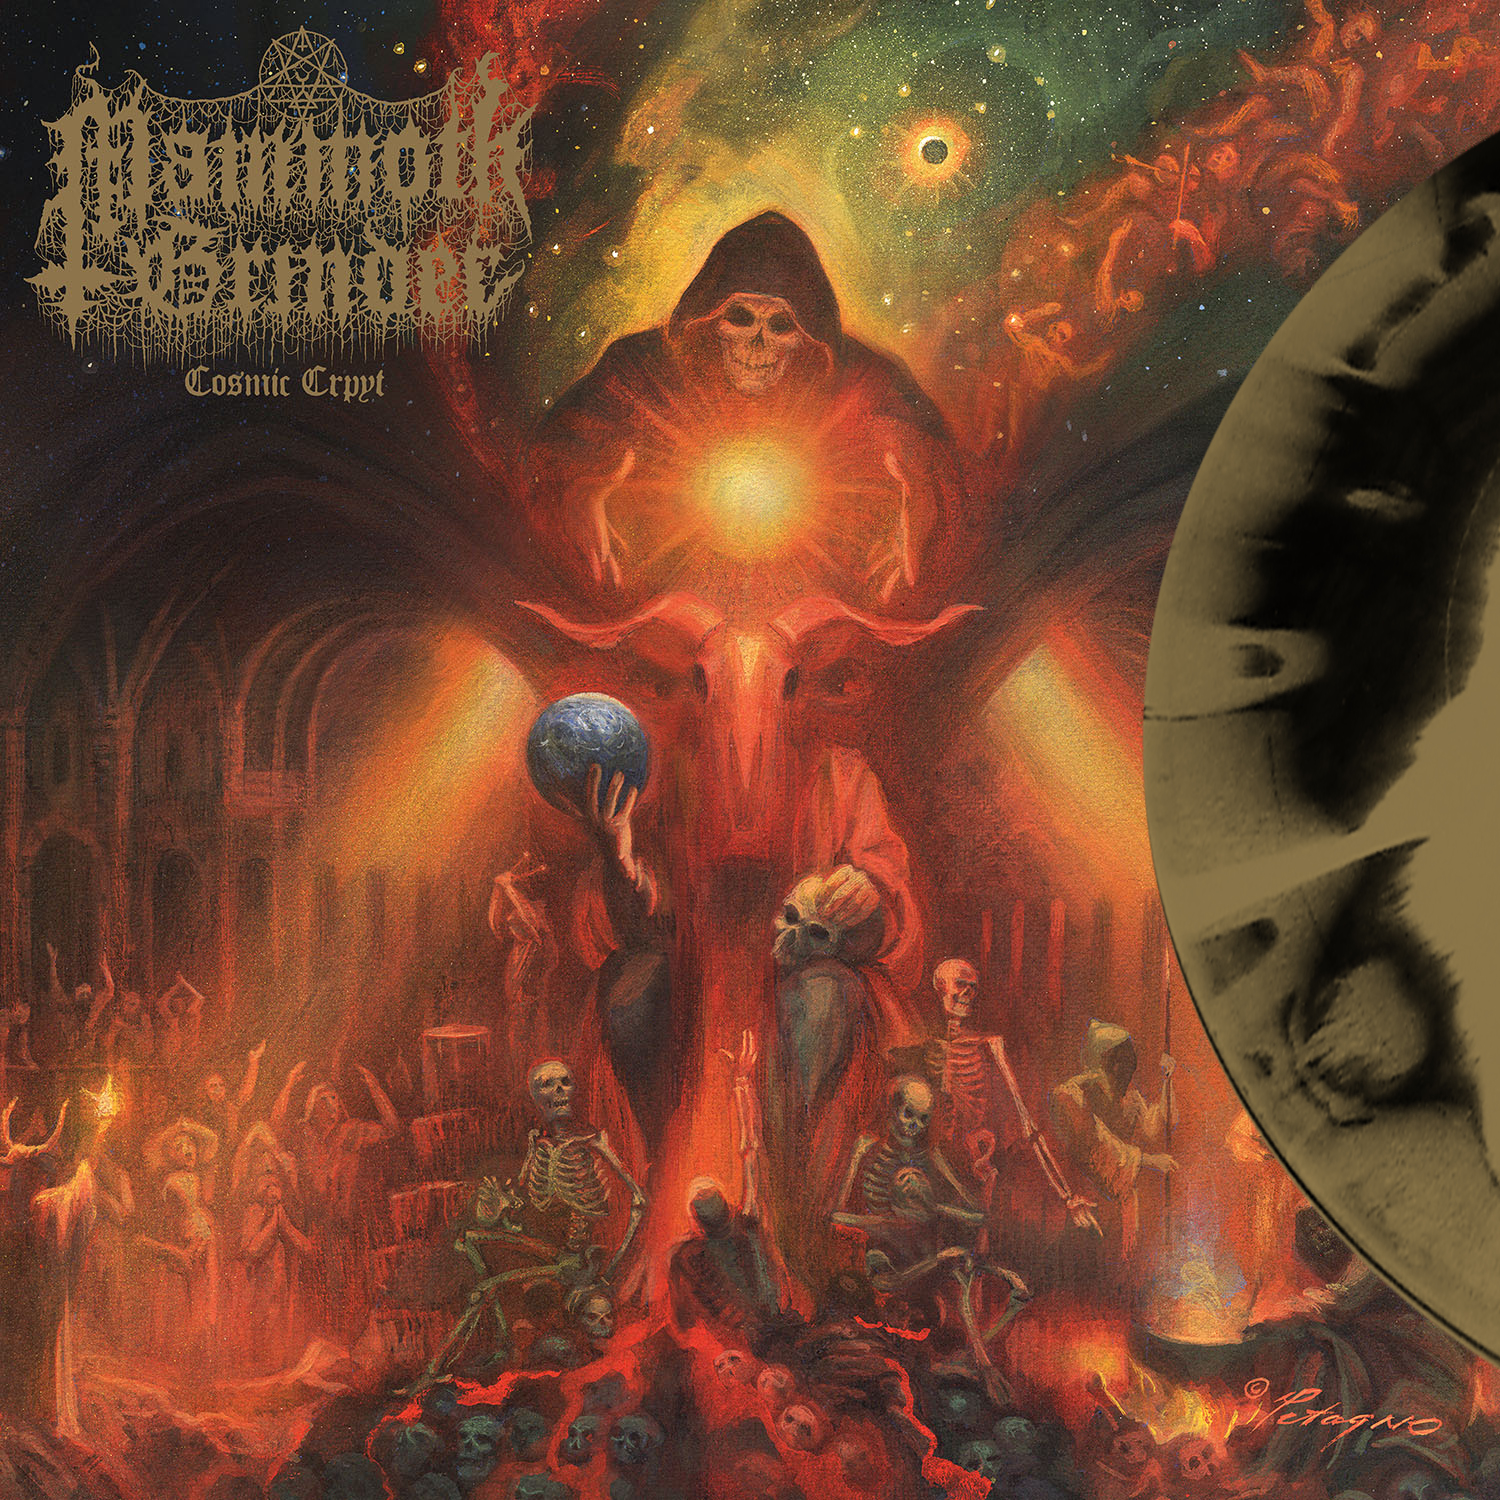 Mammoth Grinder — Cosmic Crypt